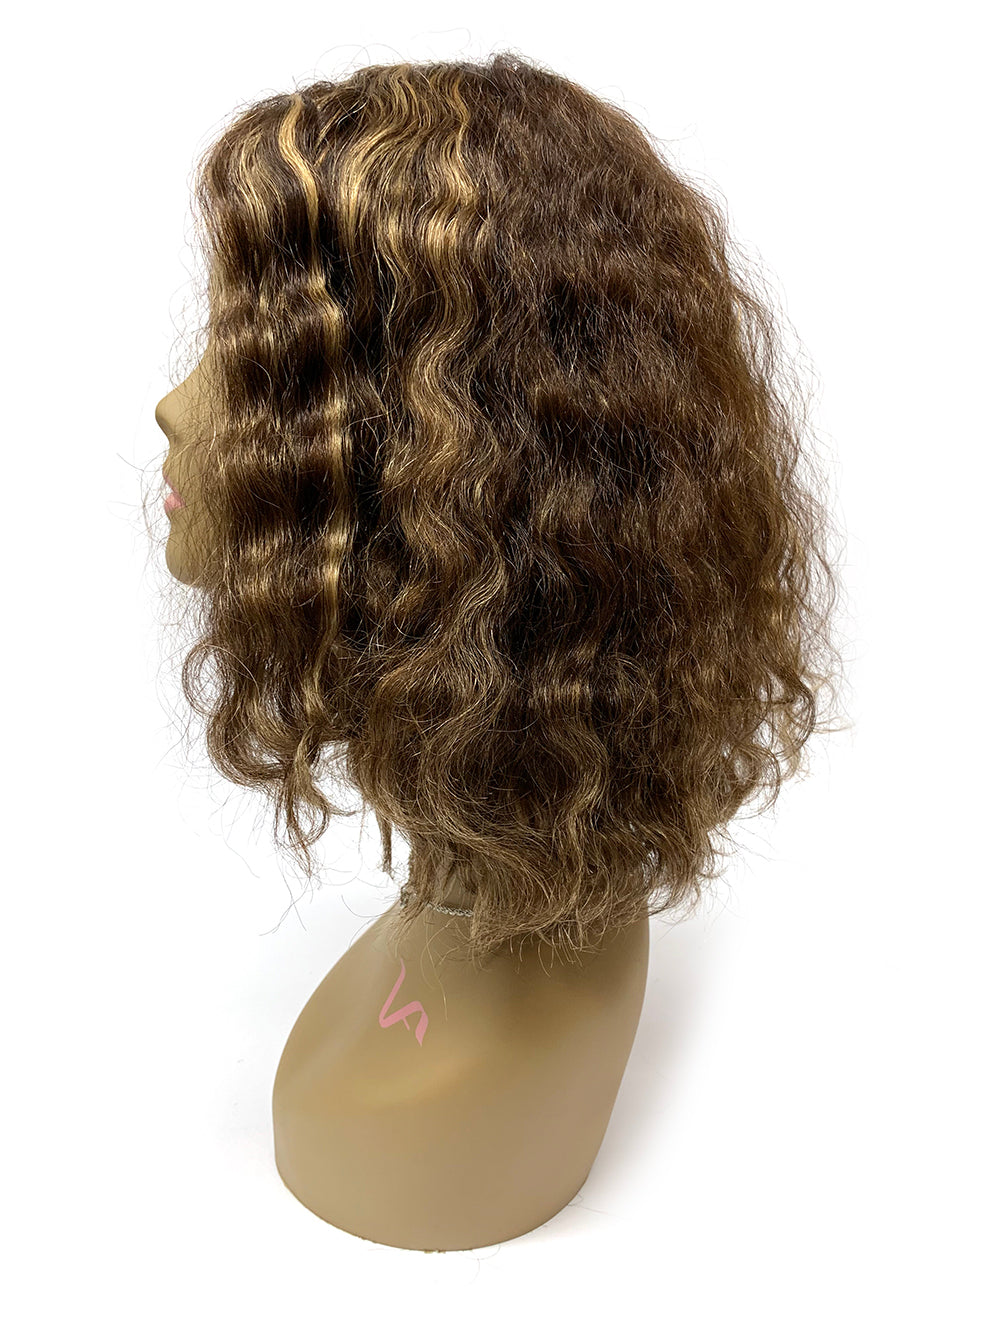 Hair Topper with Brazilian Curl - 100% Human Hair (CUSTOMIZED) #3/27 - Hairesthetic